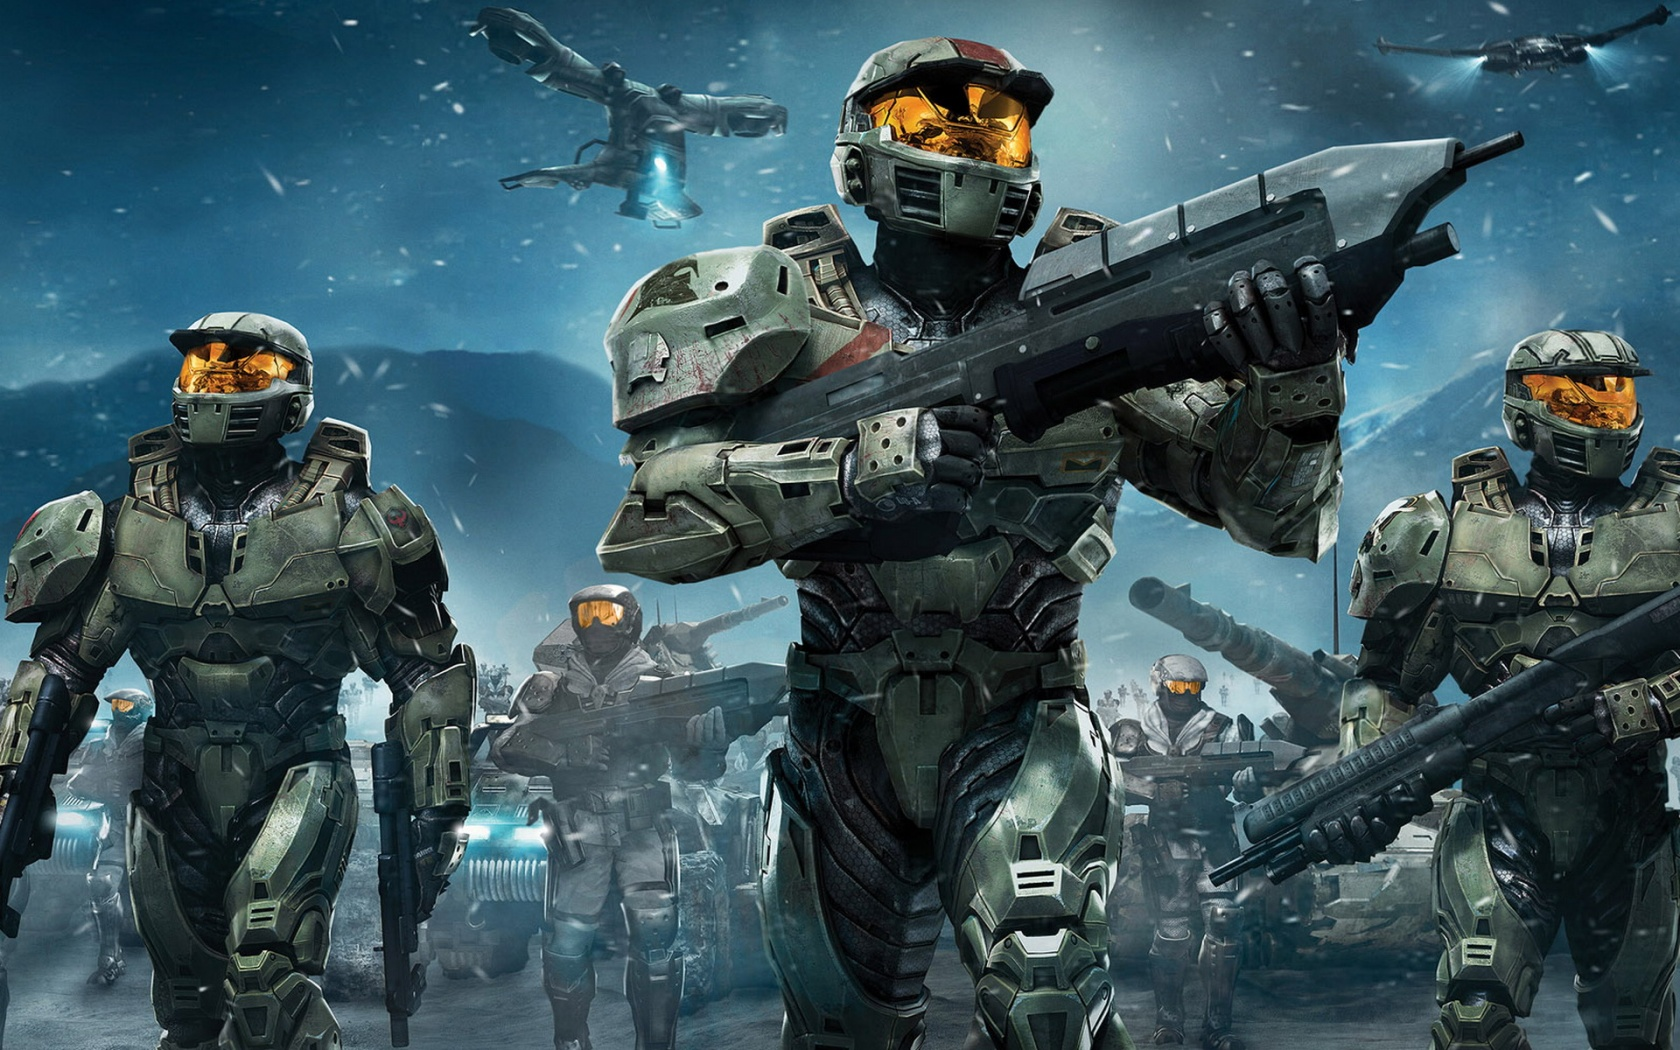 halo_wars_game_2-1680x1050